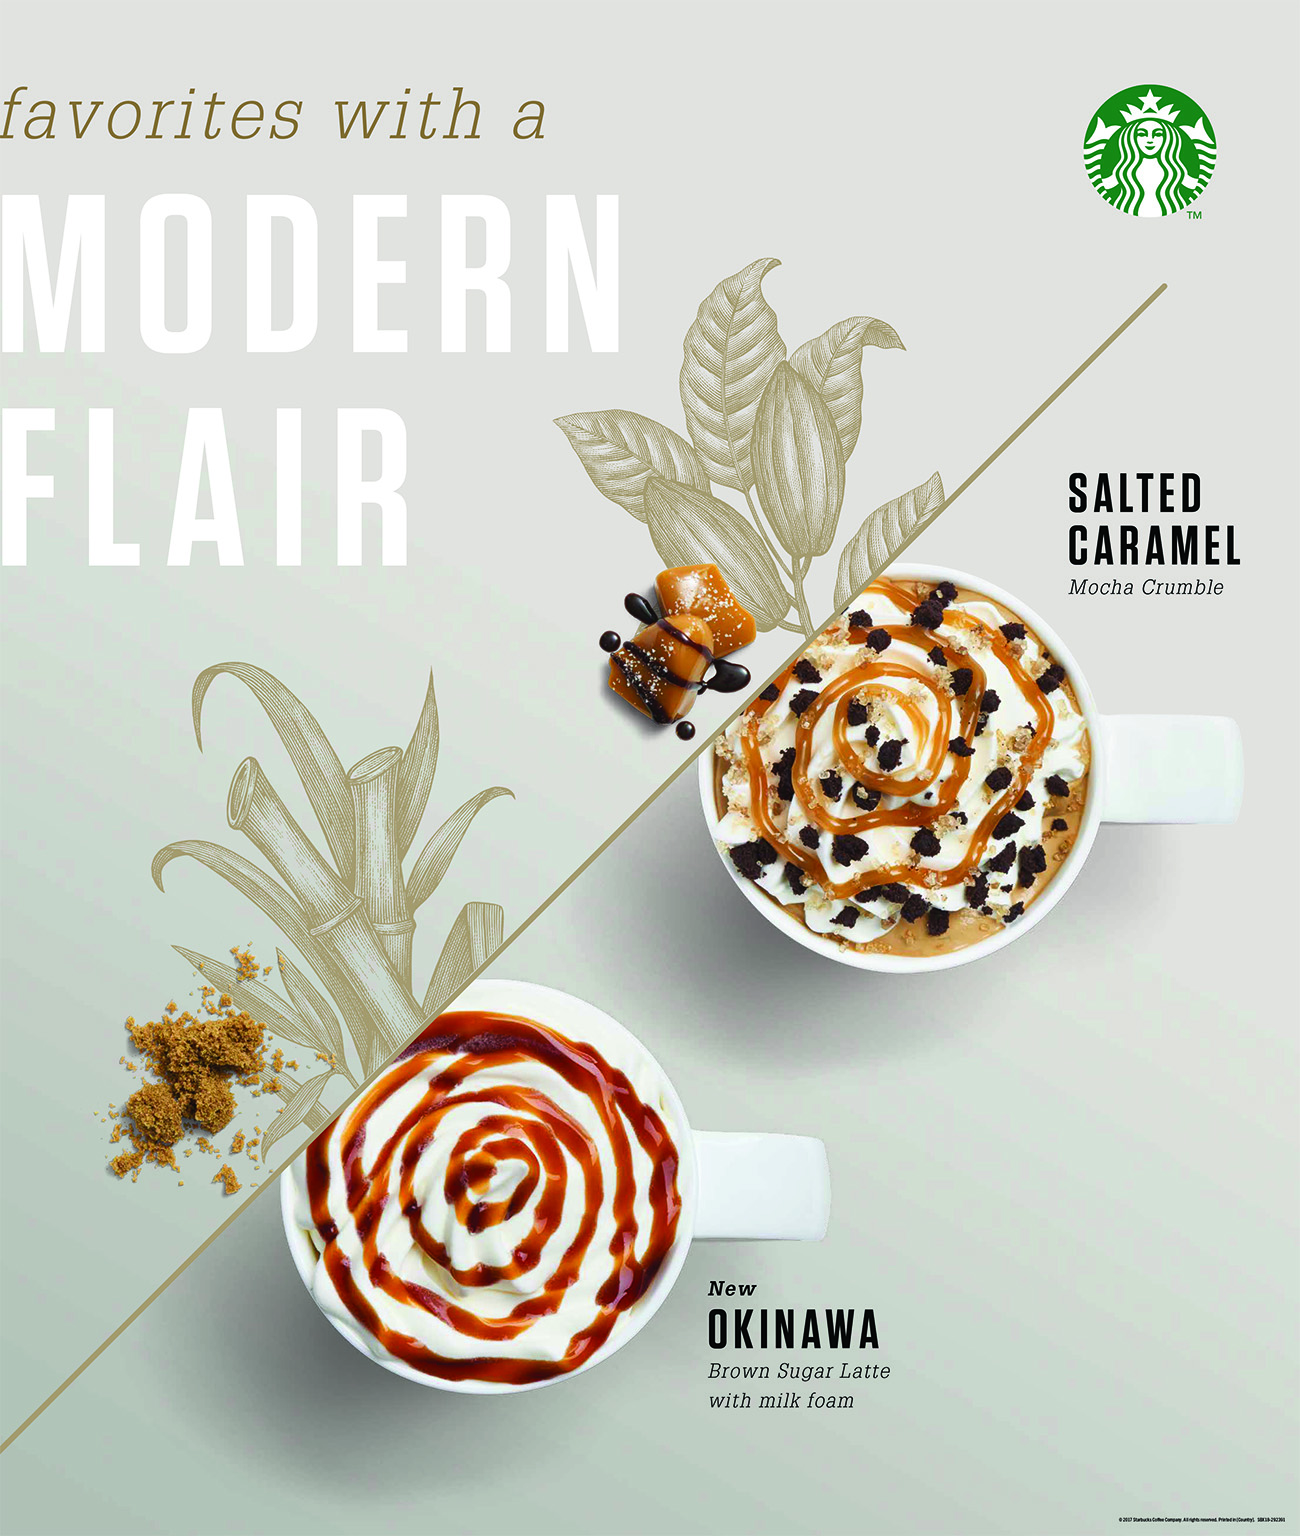 Starbucks welcomes 2018 with new beverages and fun treats